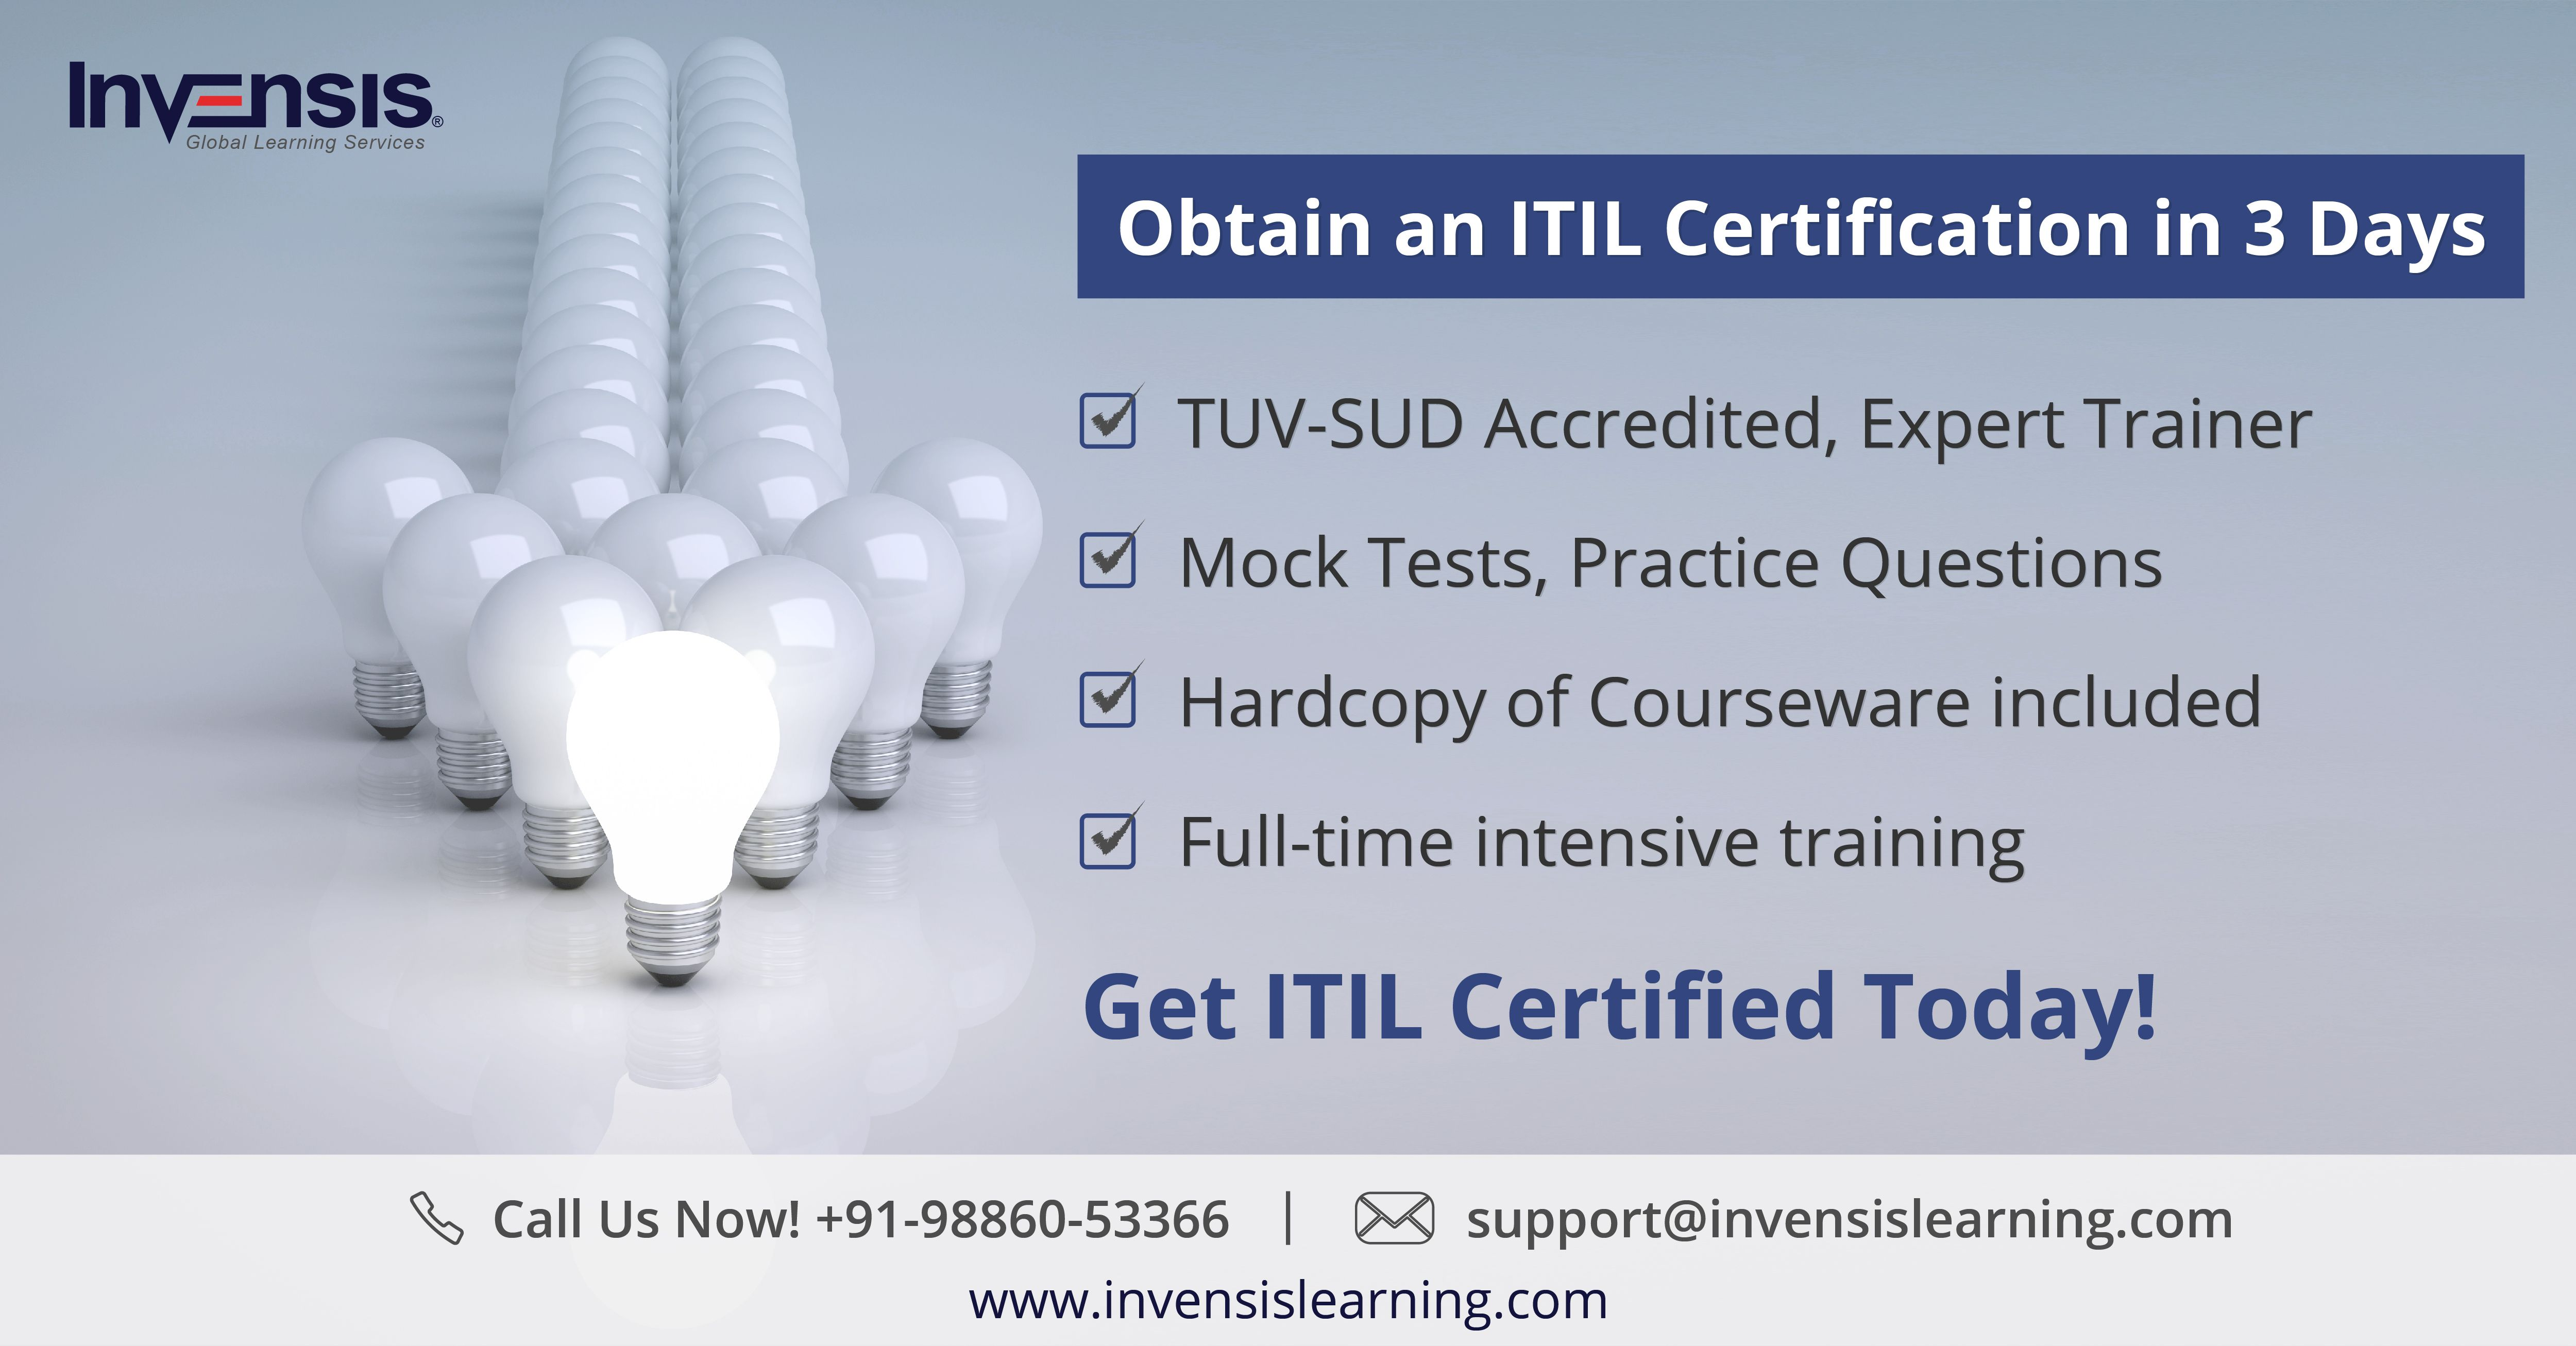 Get itil certified in 3 days benefits of taking the course get itil certified in 3 days benefits of taking the course tuv sud accredited expert trainer mock tests hard copy of courseware riyadh 1betcityfo Image collections